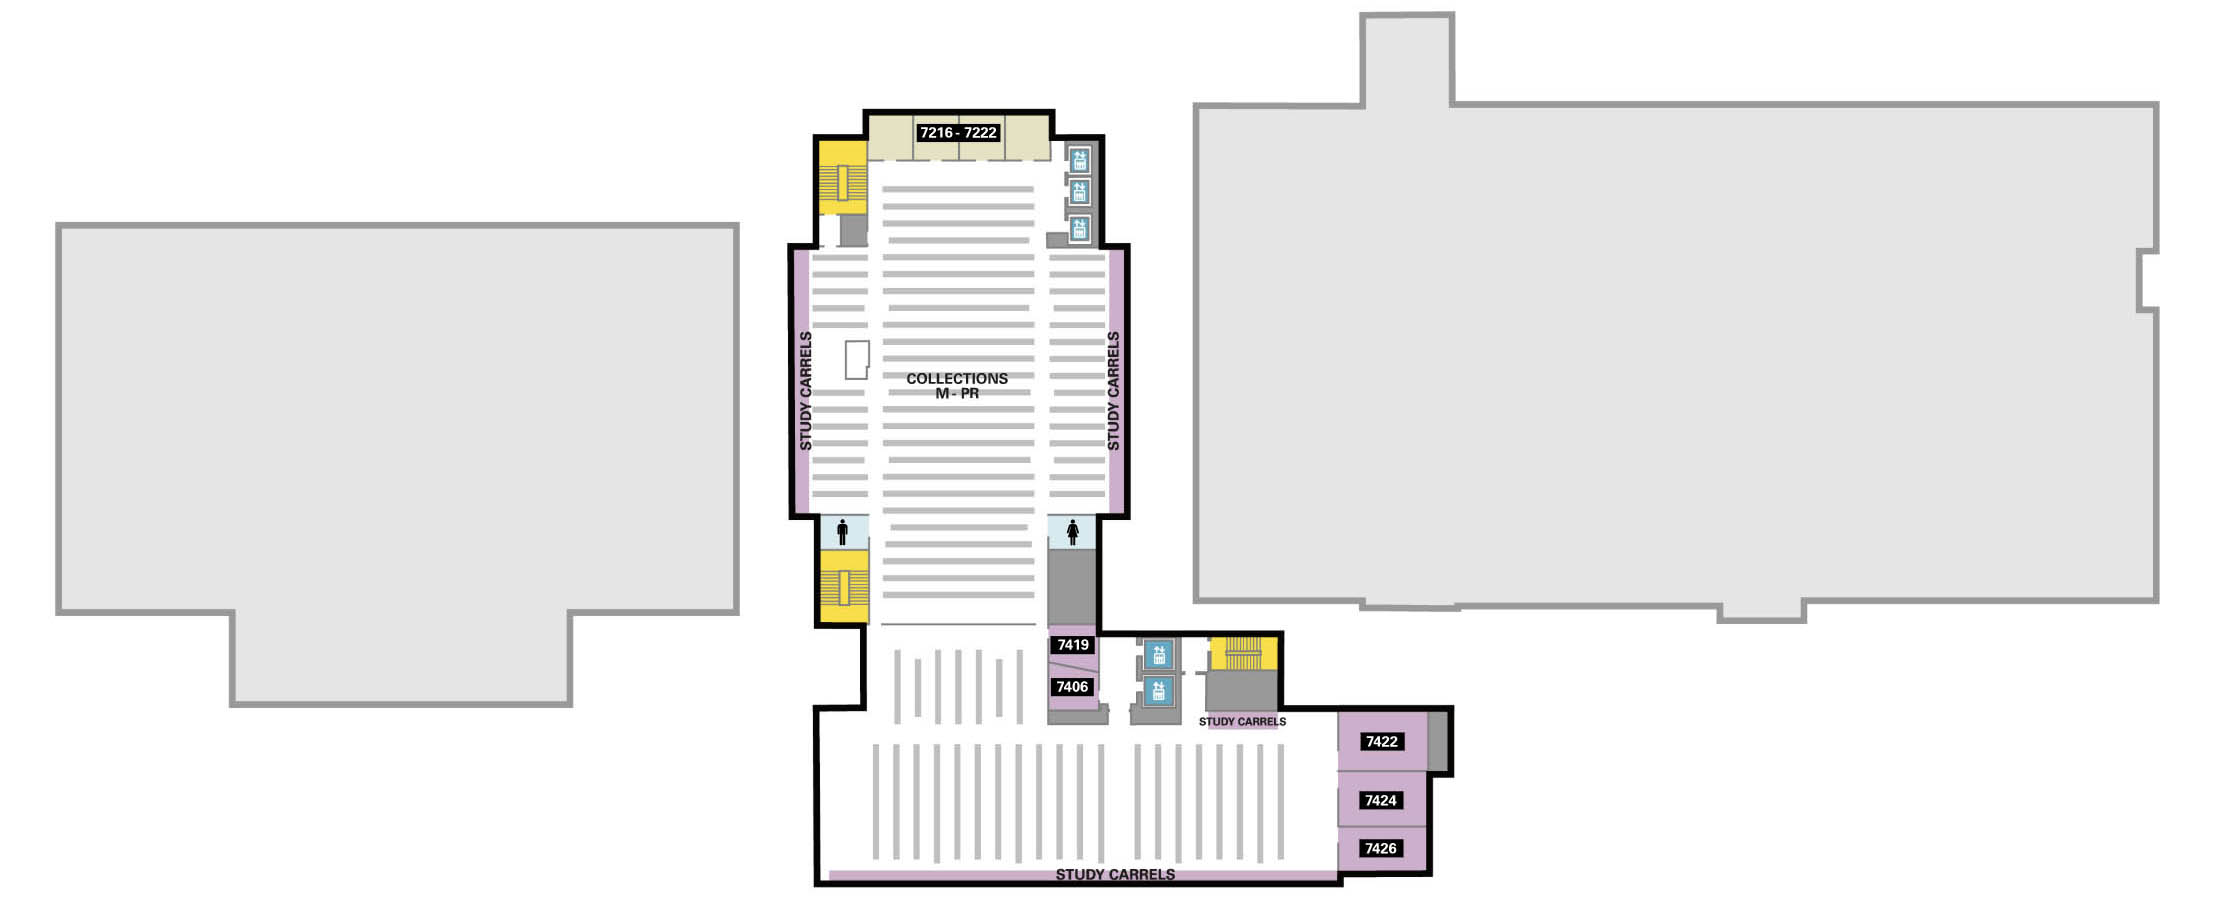 Seventh floor: book stacks, call numbers M through PR; group study rooms; study carrels